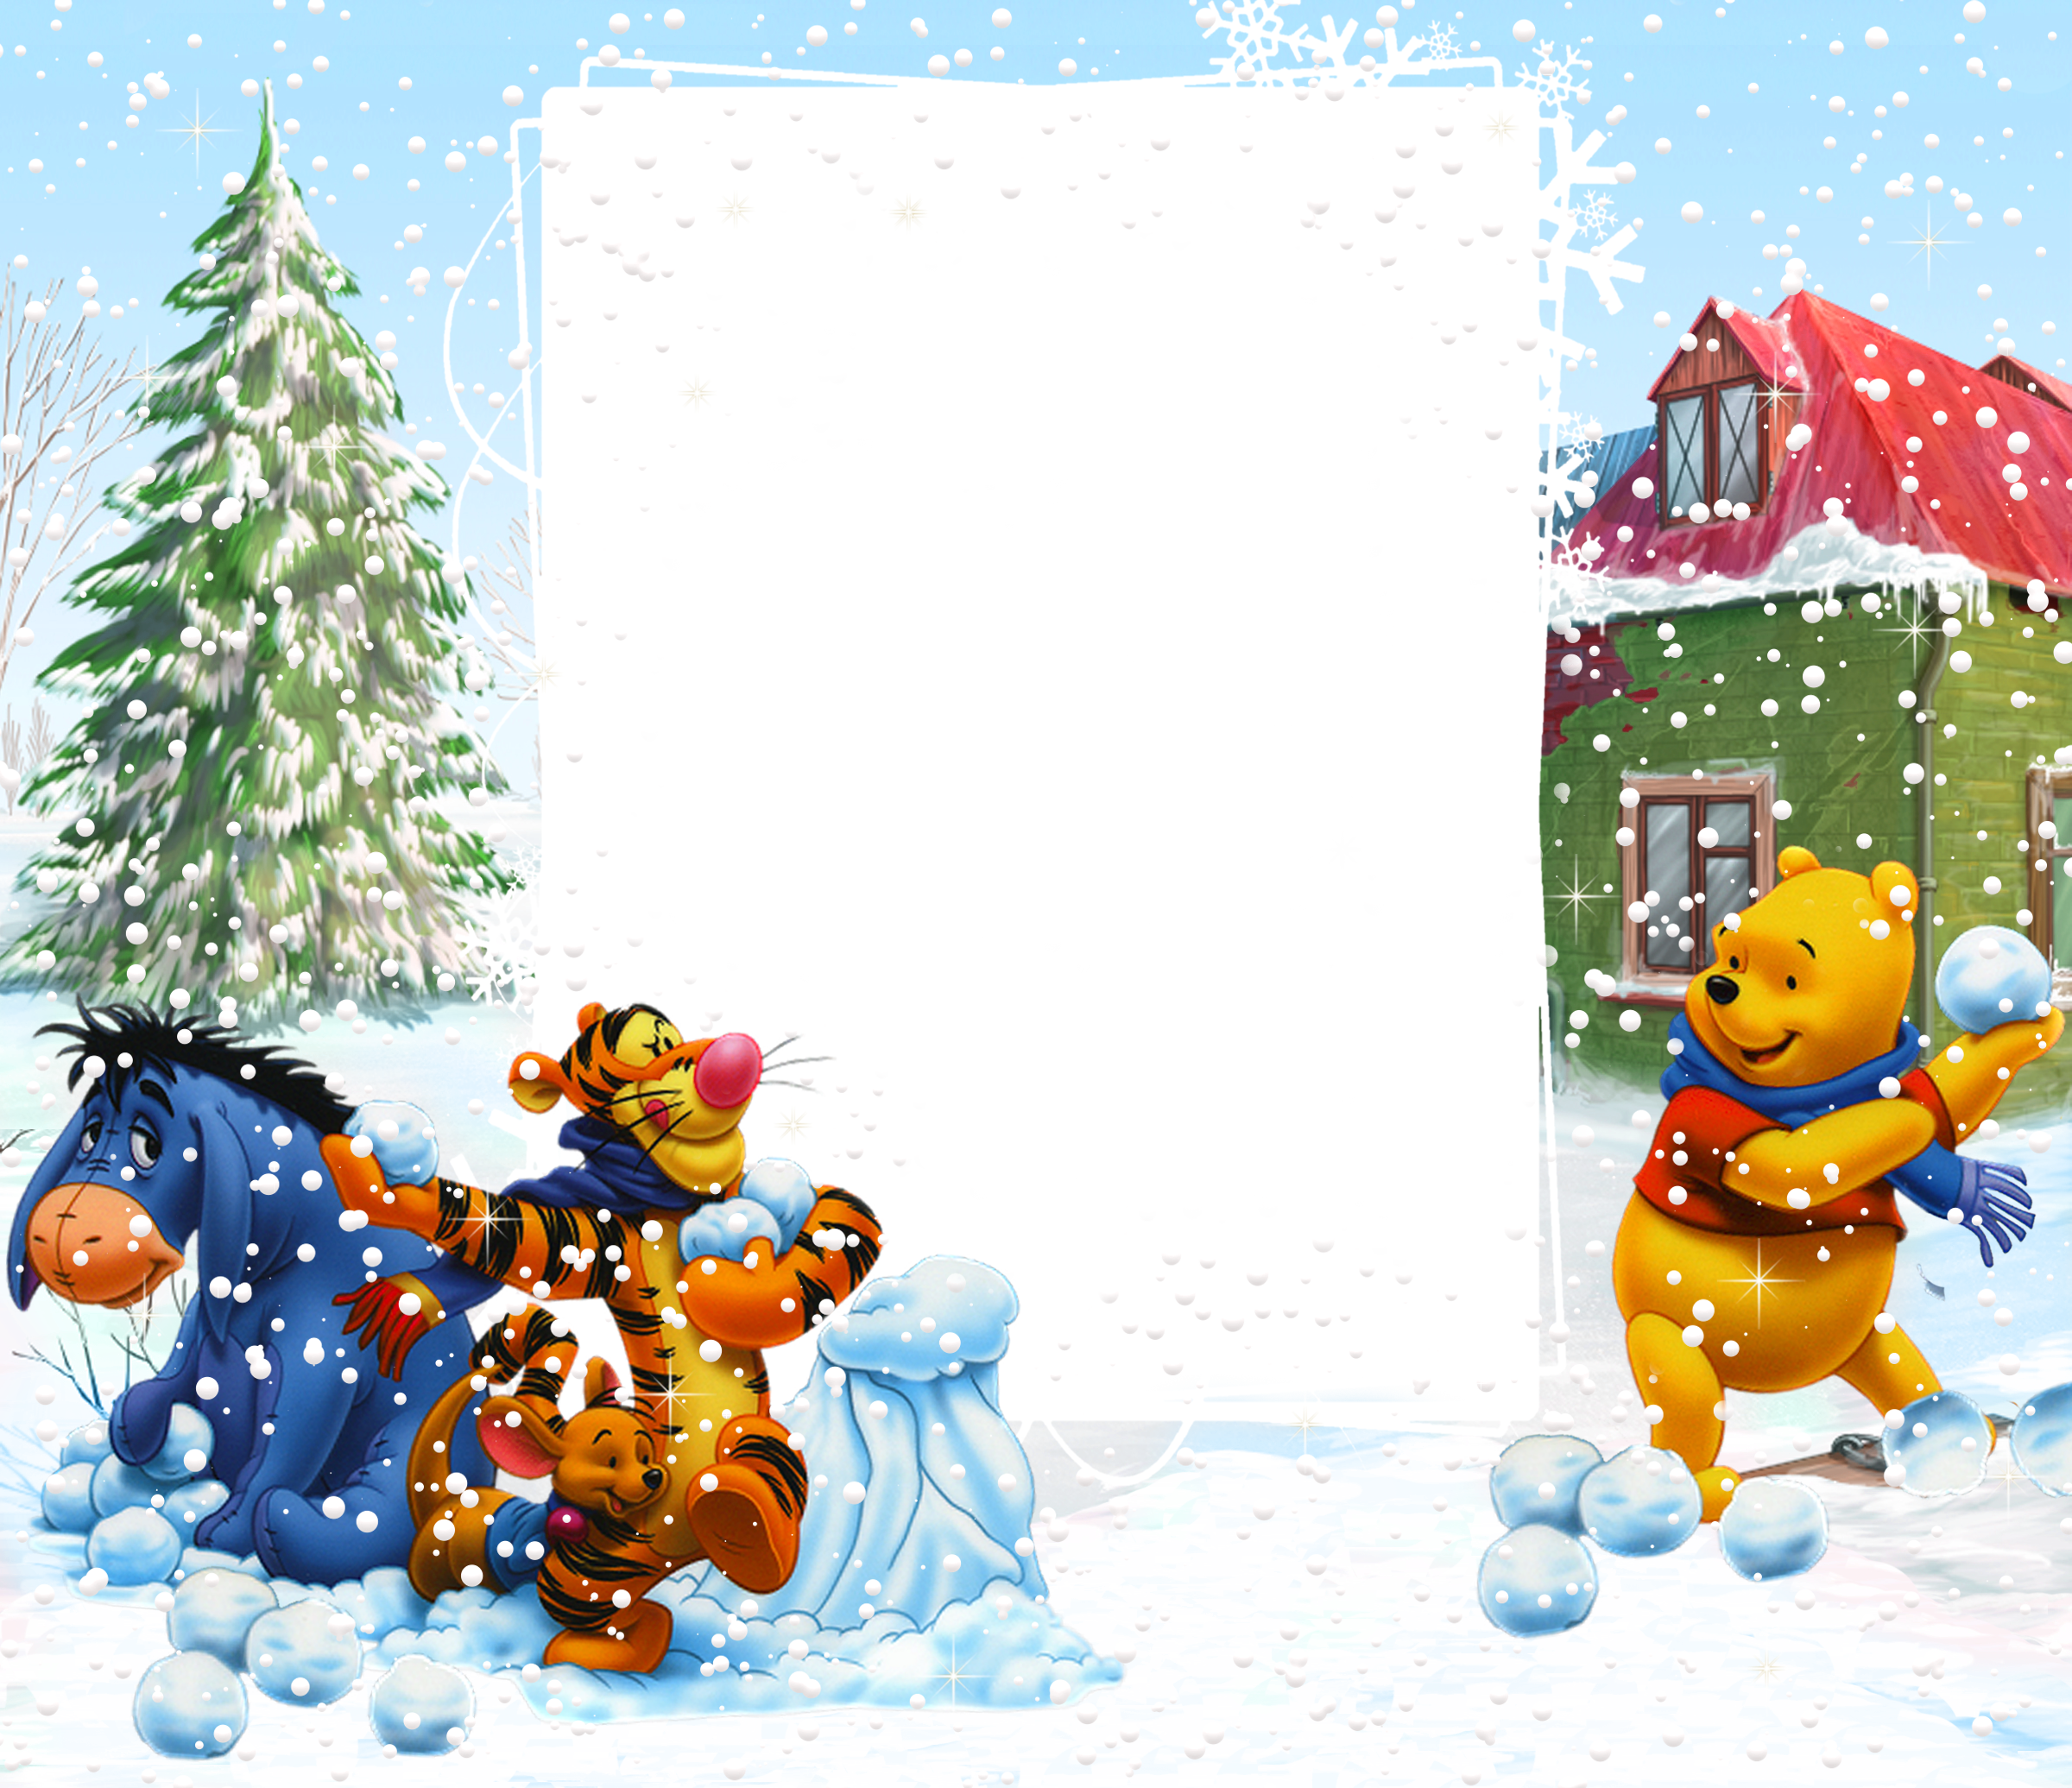 Frame clipart winter View full Yopriceville Pooh